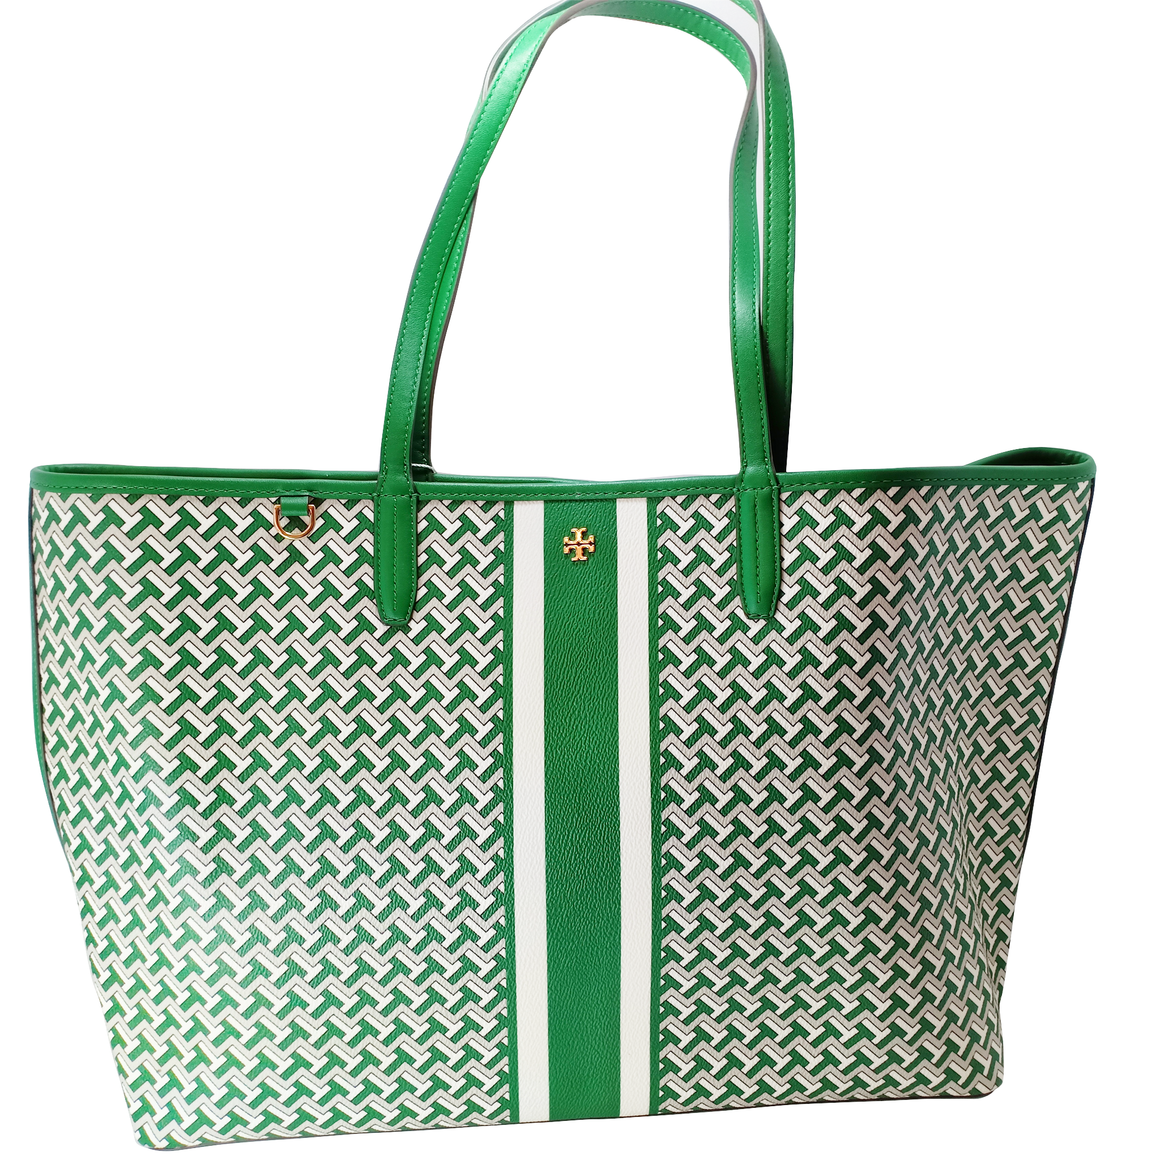 Tory Burch T Tile Link Green Tote